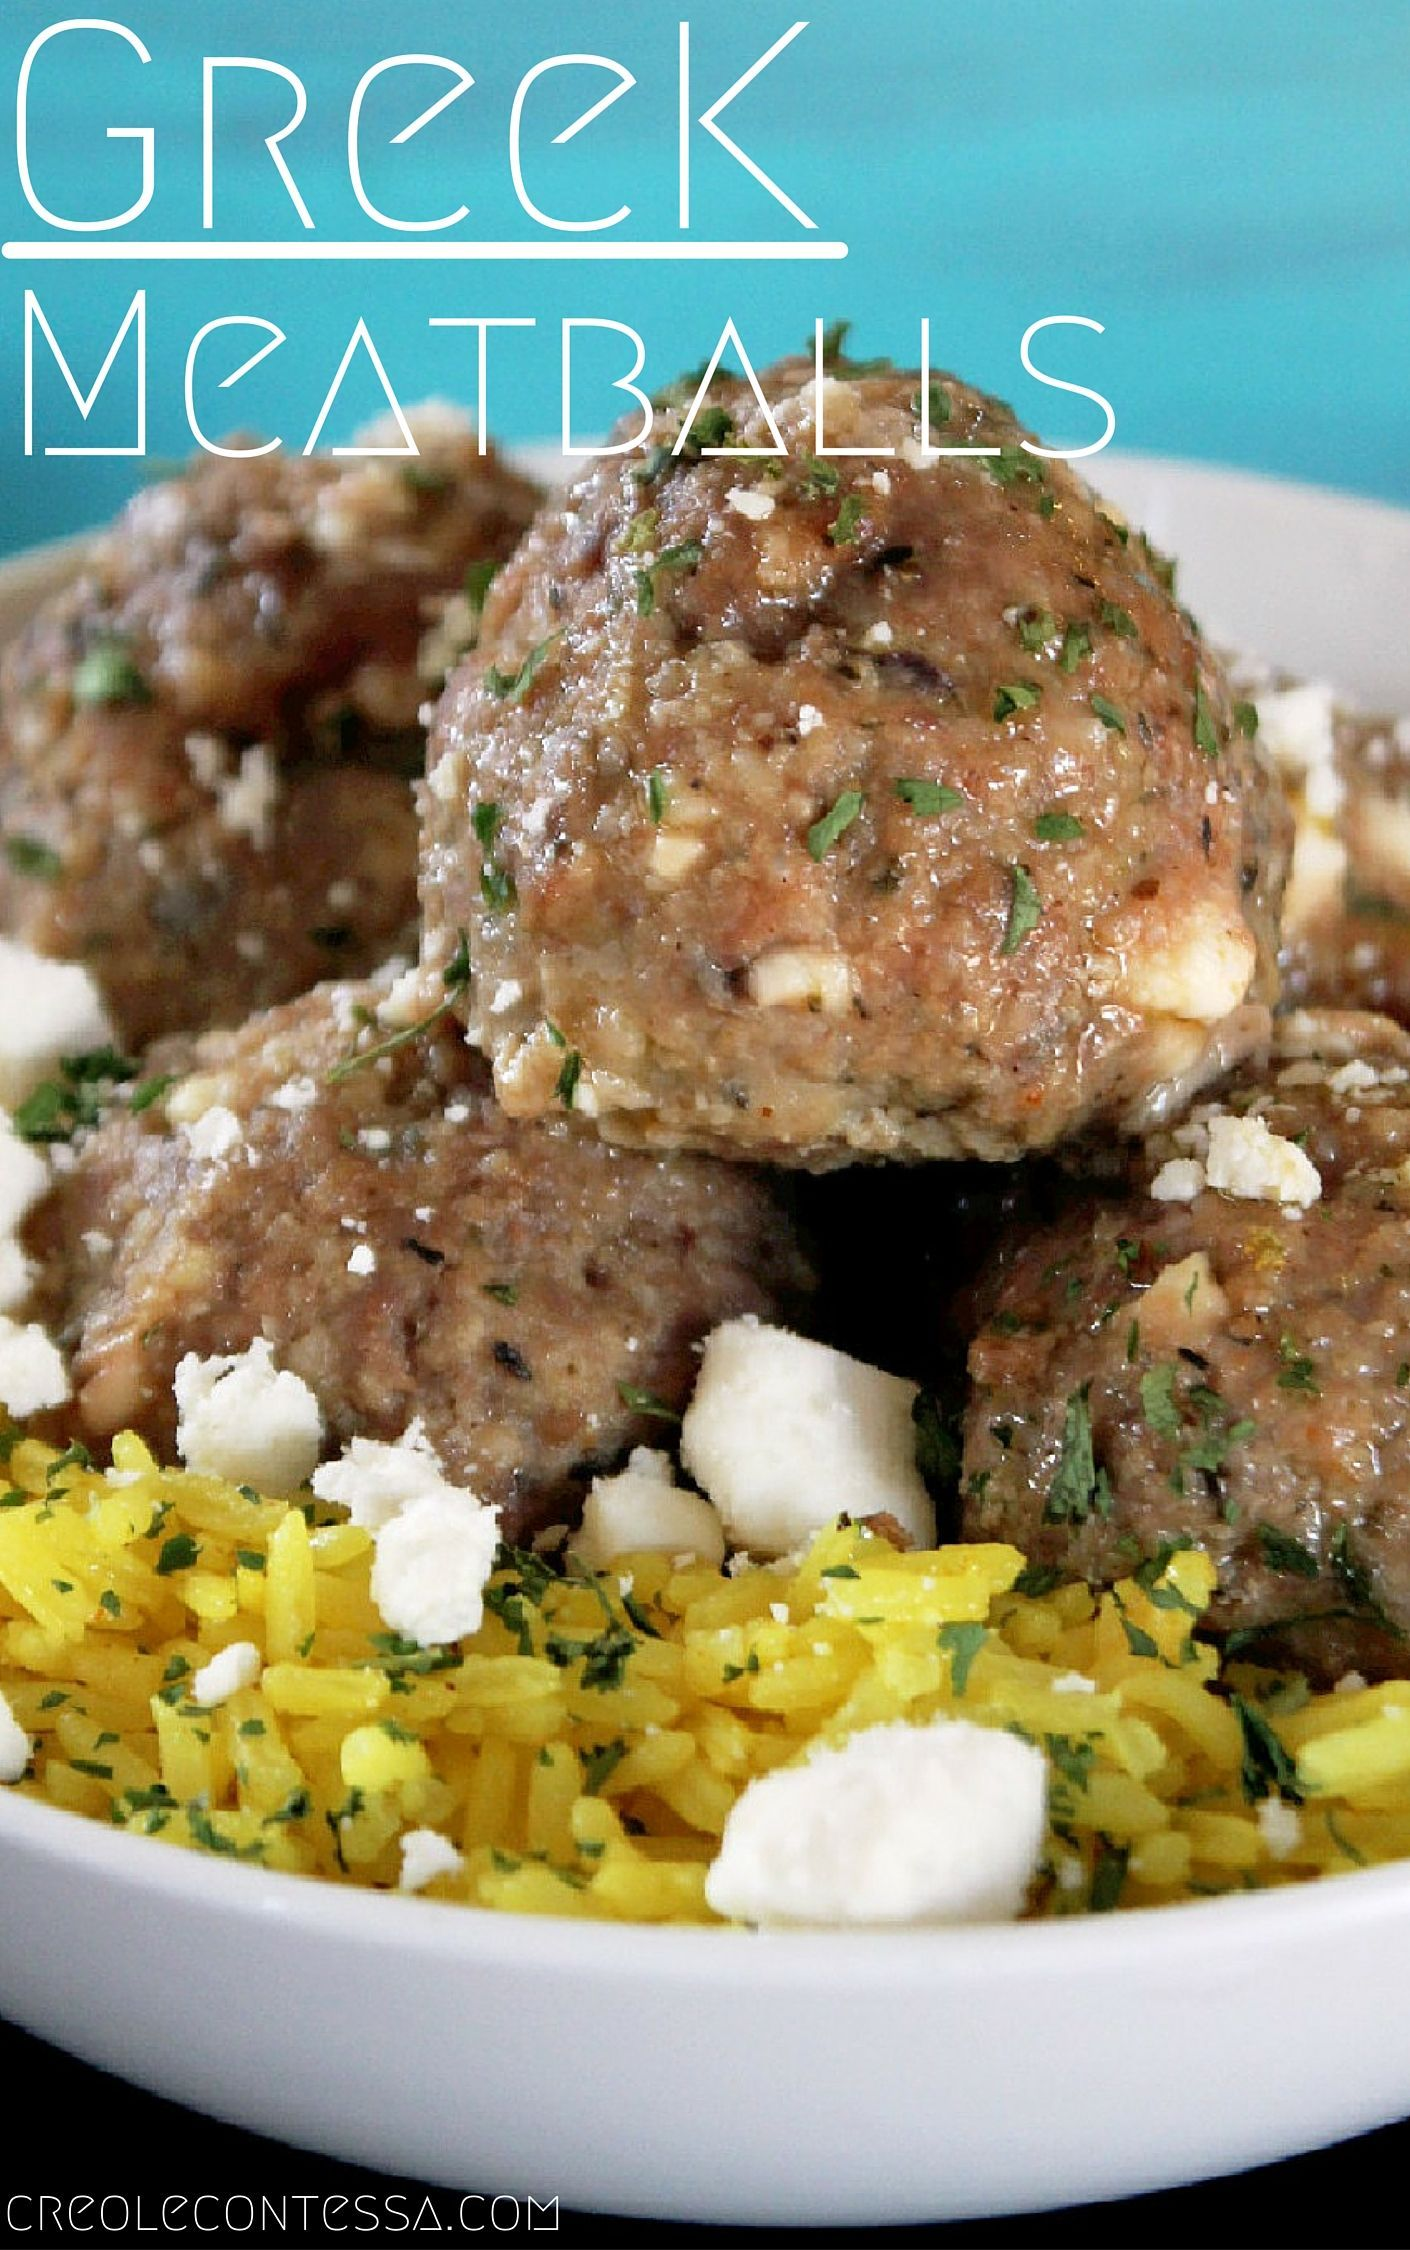 for a healthier, lighter appetizer or meal, these meatballs combine ground lamb and turkey for loads of lamb flavor. Add pureed onions, garlic, mint, feta cheese, egg and spices to the meat mixture and don't forget a little bread soaked in a little milk to hold everything together.Baked for a healthier, lighter appetizer or meal, these meatballs ...